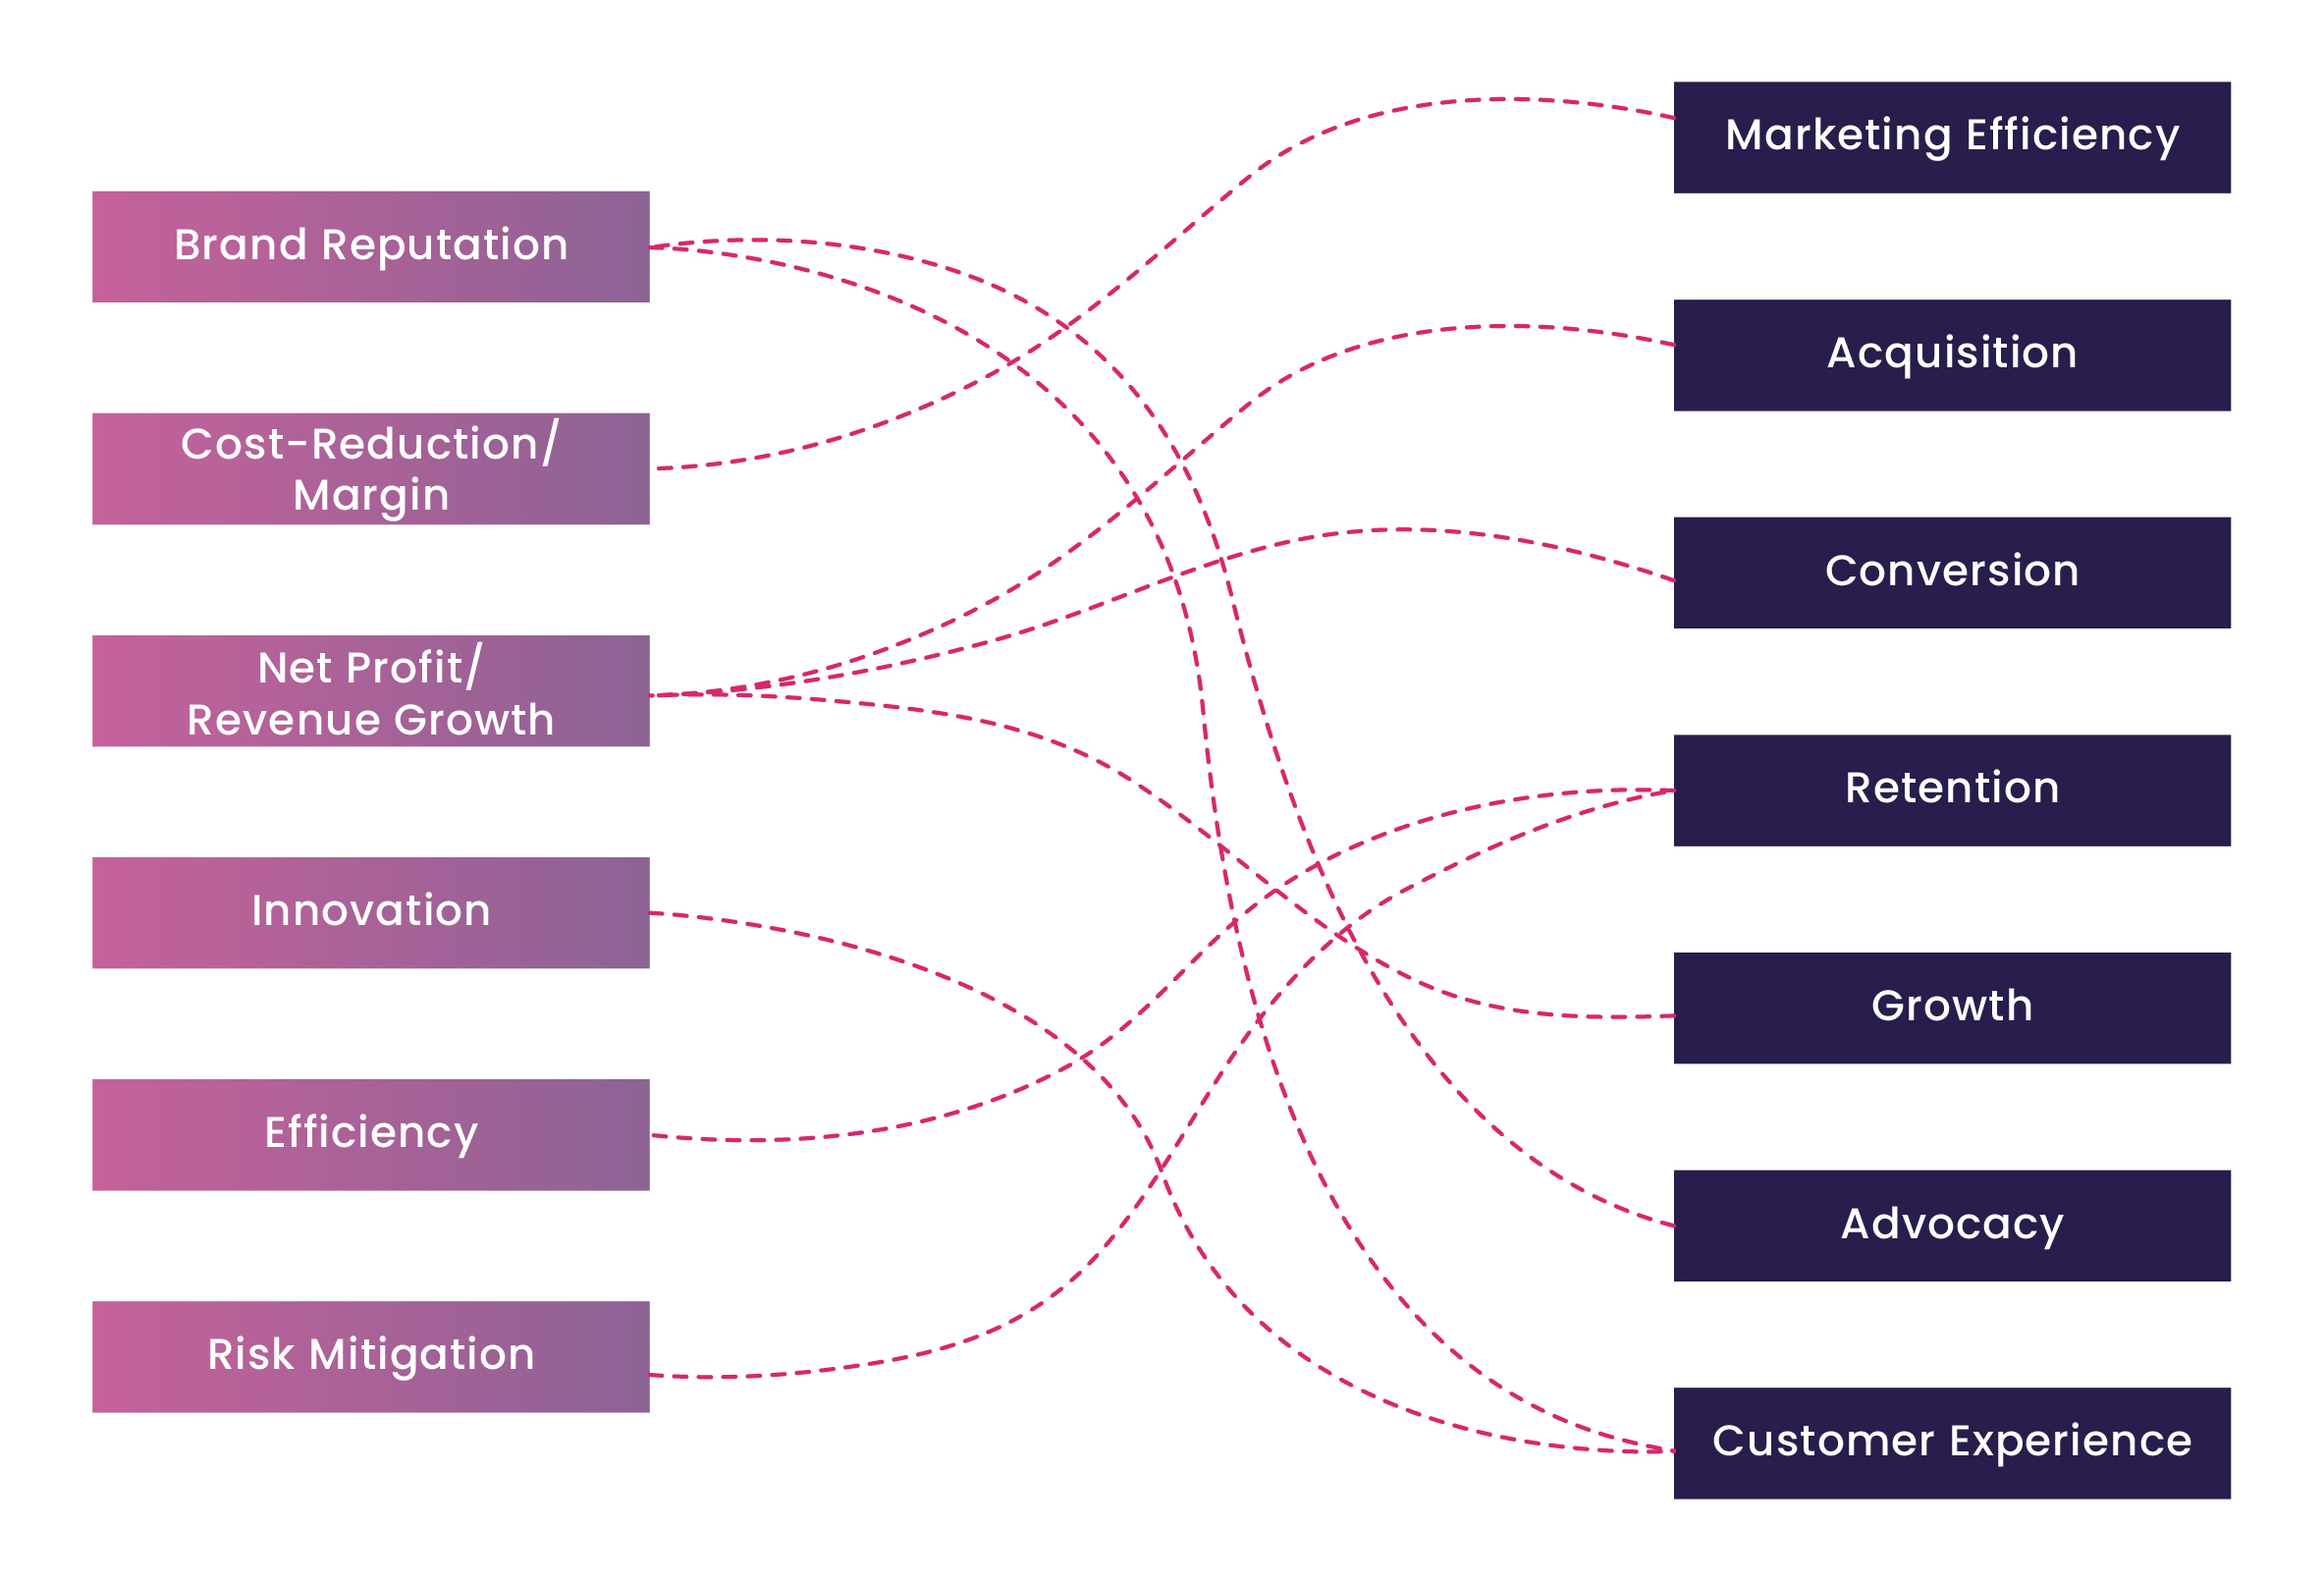 Building the Best-Fit Marketing Technology Stack